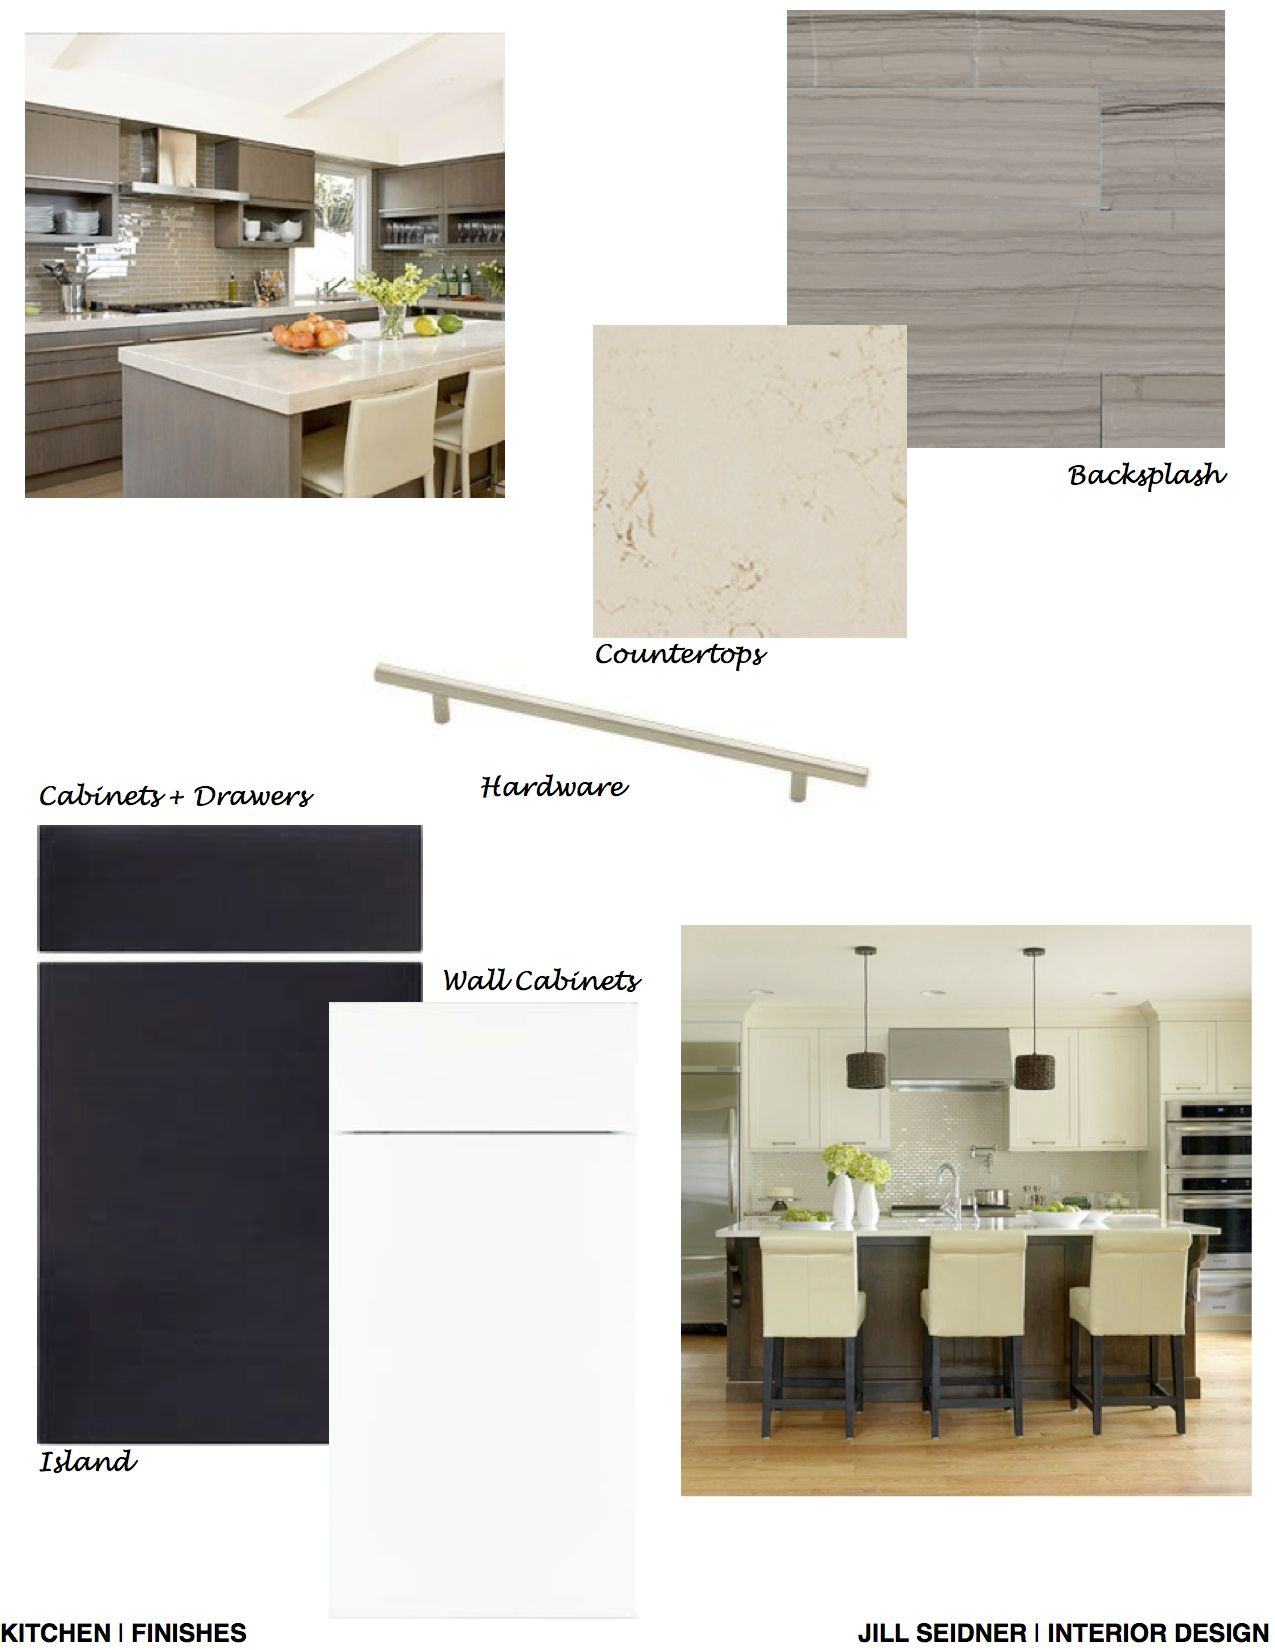 Kitchen Remodel Blogs Concept Simple Newport Coast Ca Kitchen Remodel Finishes Concept Board Www . Review